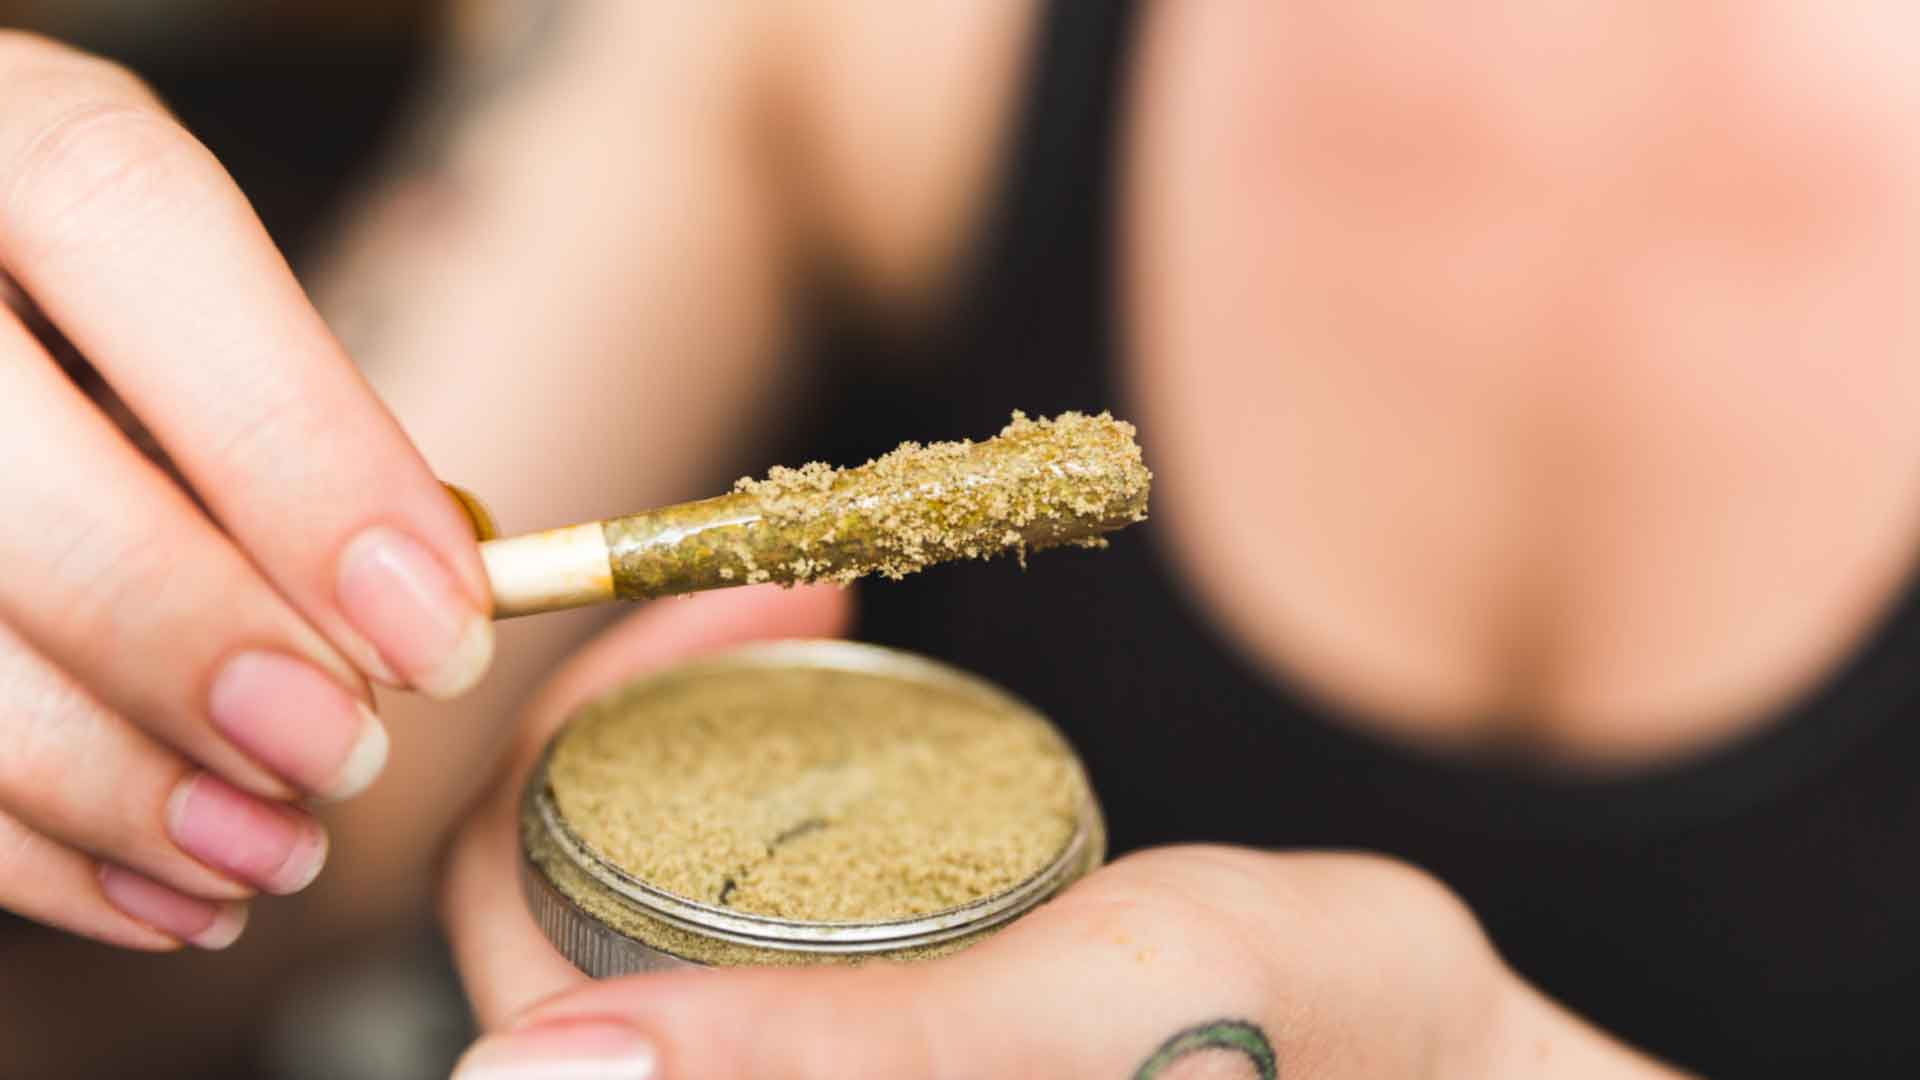 What to do with your kief